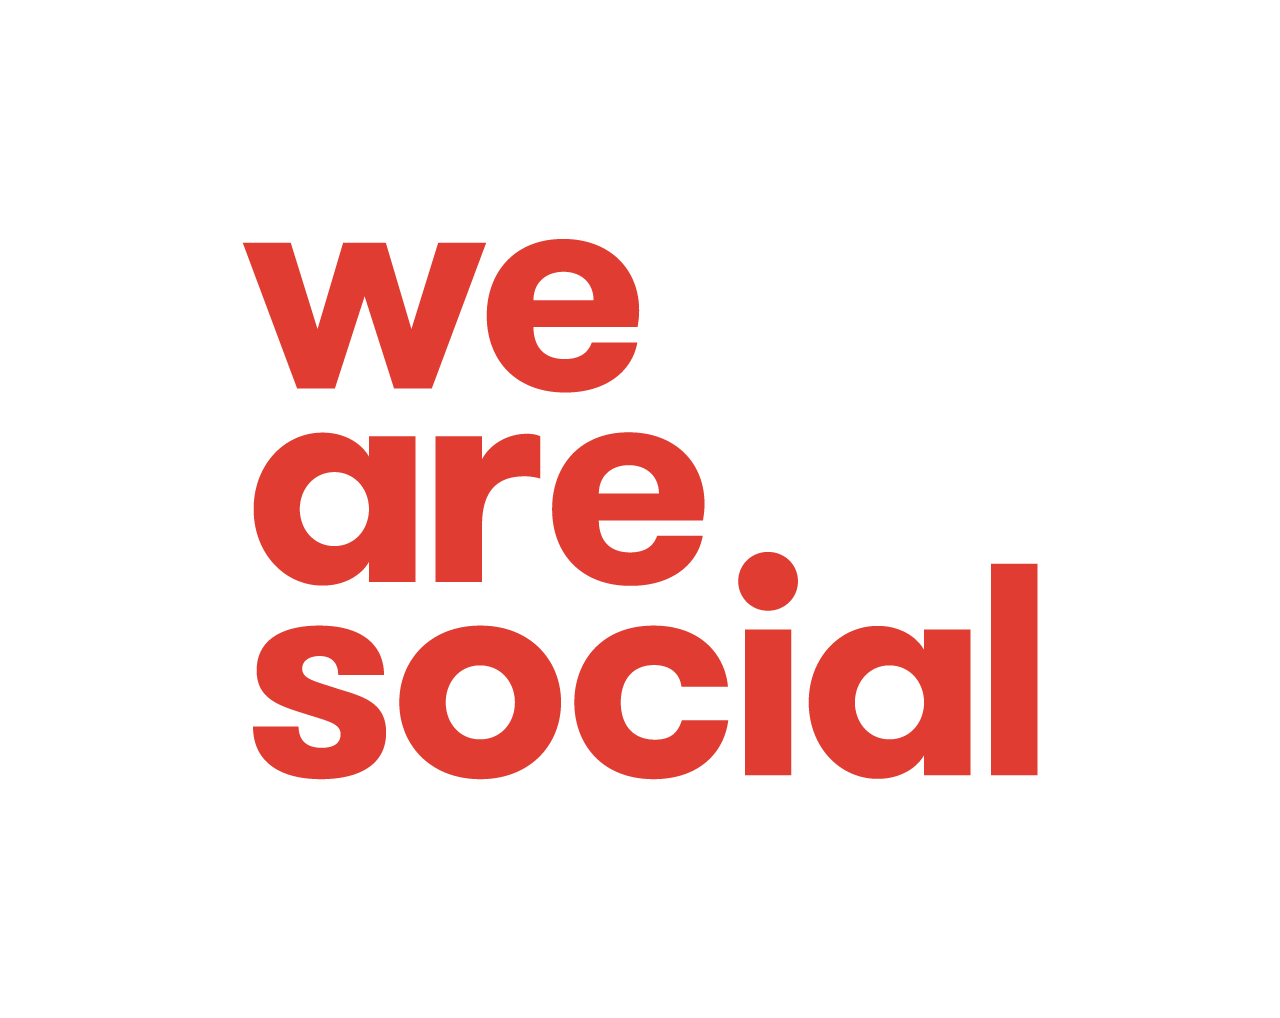 we are social we are a global agency we deliver world class